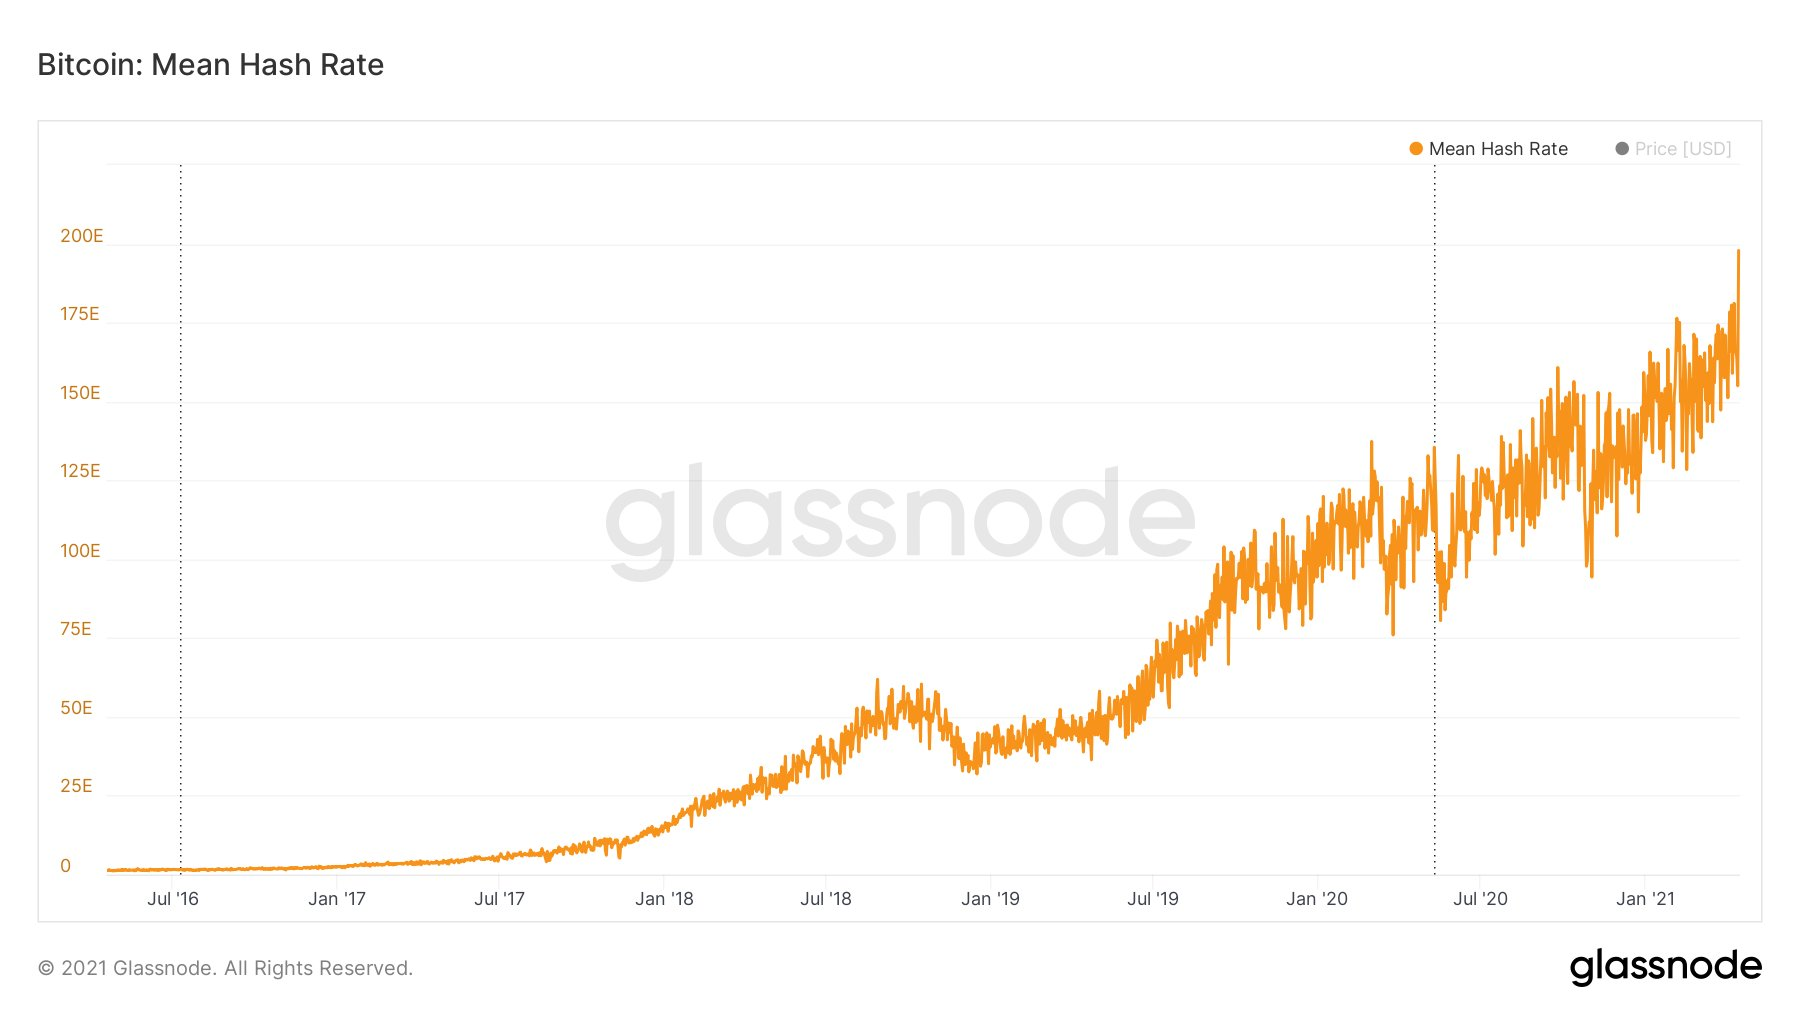 Bitcoin hash rate hits record 200 EH/s in fresh BTC price bull flag